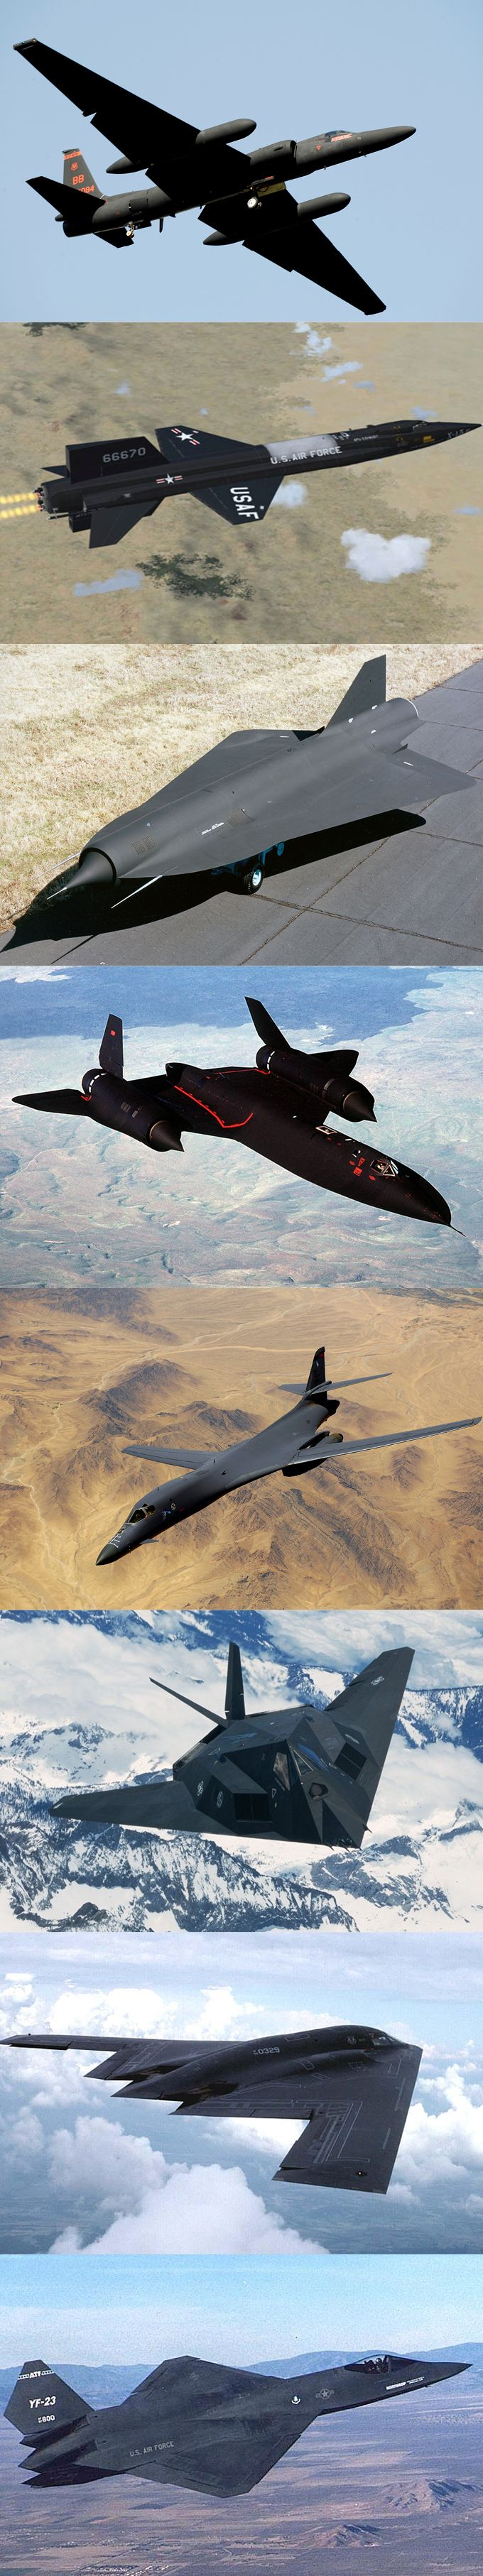 'Black' planes / 1957 Lockheed U-2 Dragon Lady / 1959 North American X-15 / 1964 Lockheed D-21 / 1966 Lockheed SR-71 Blackbird / 1974 Rockwell B-1 Lancer / 1983 Lockheed Martin F-117 Nighthawk / 1989 Northrop Grumman B-2 Spirit / 1990 Northrop YF-23 Black Widow II / stealth X-planes